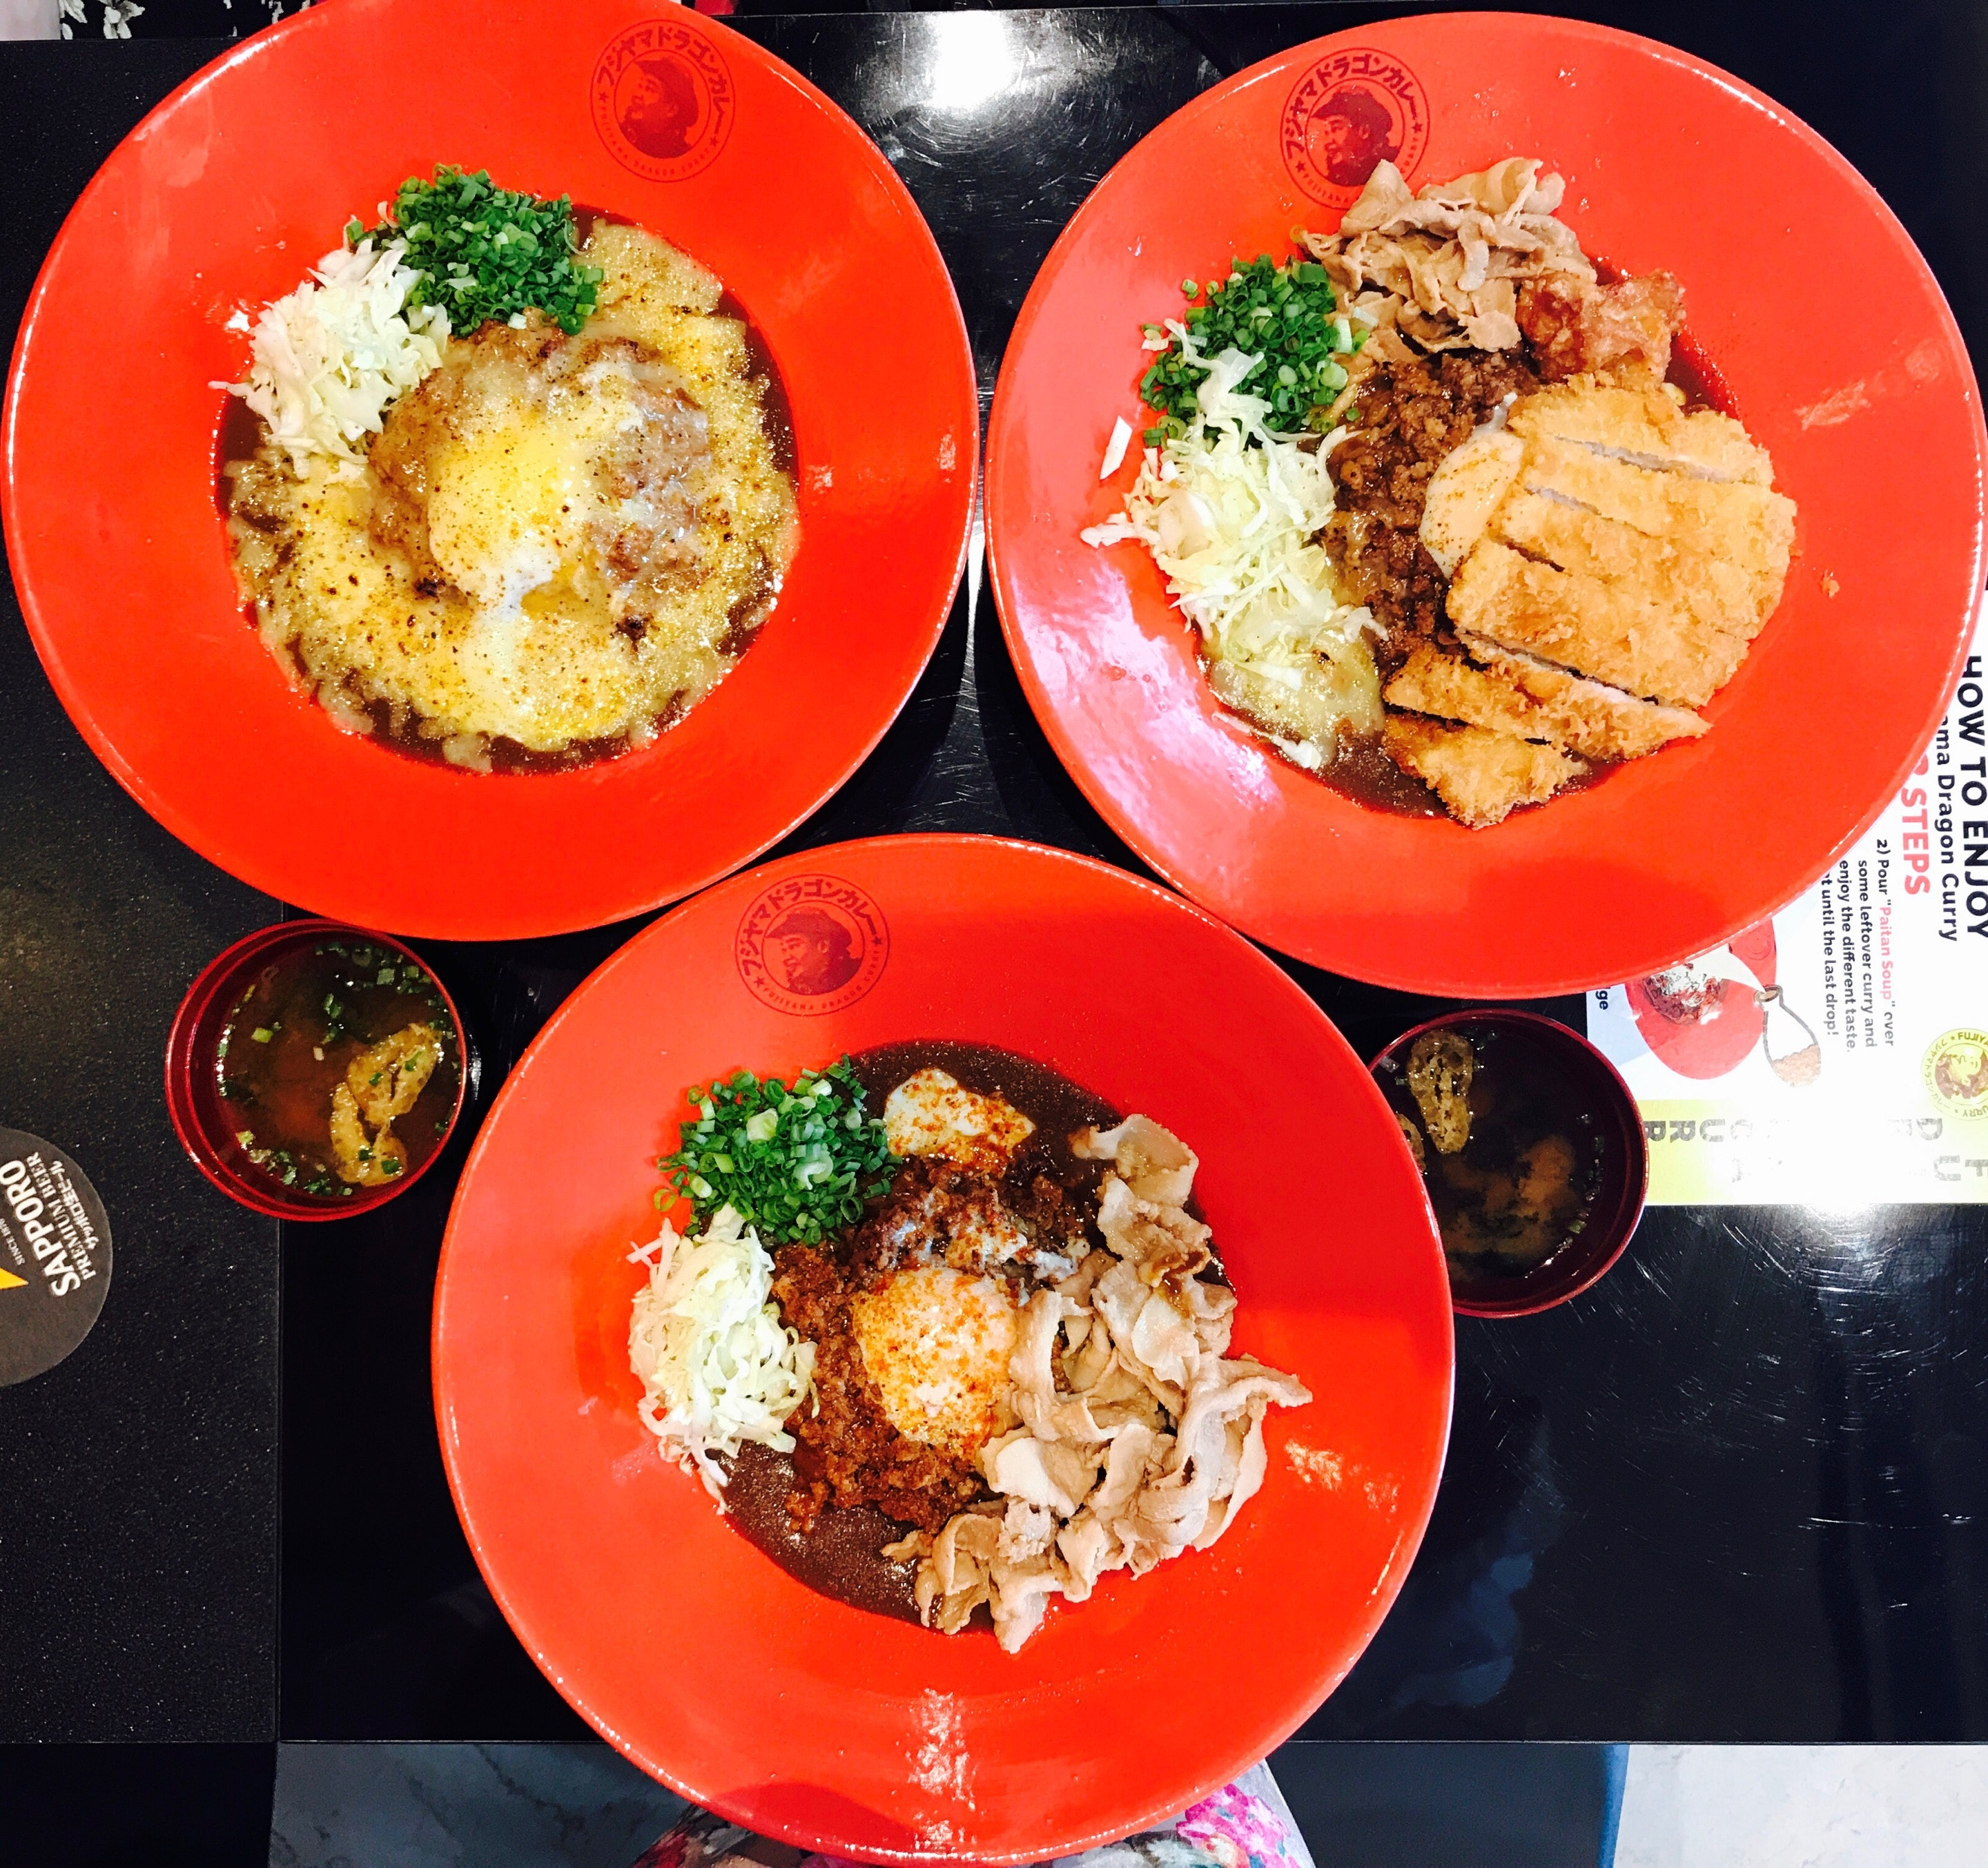 New Japanese Curry Restaurant in Tanjong Pagar